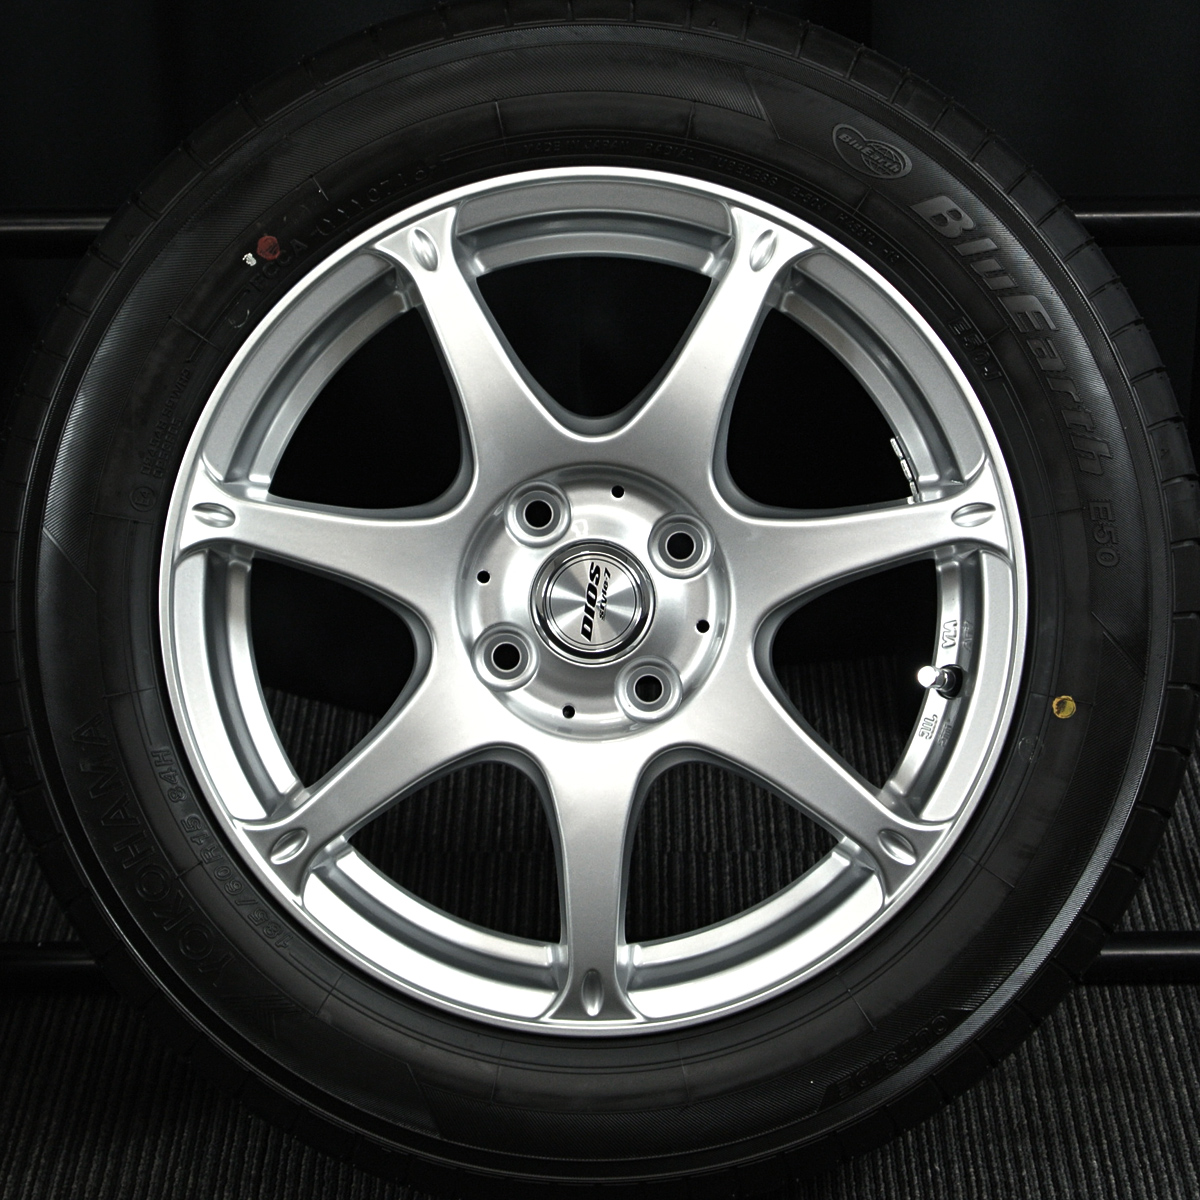 MANARAY SPORT DIOS style7 シルバー YOKOHAMA BluEarth E50 185/60R15 4本SET